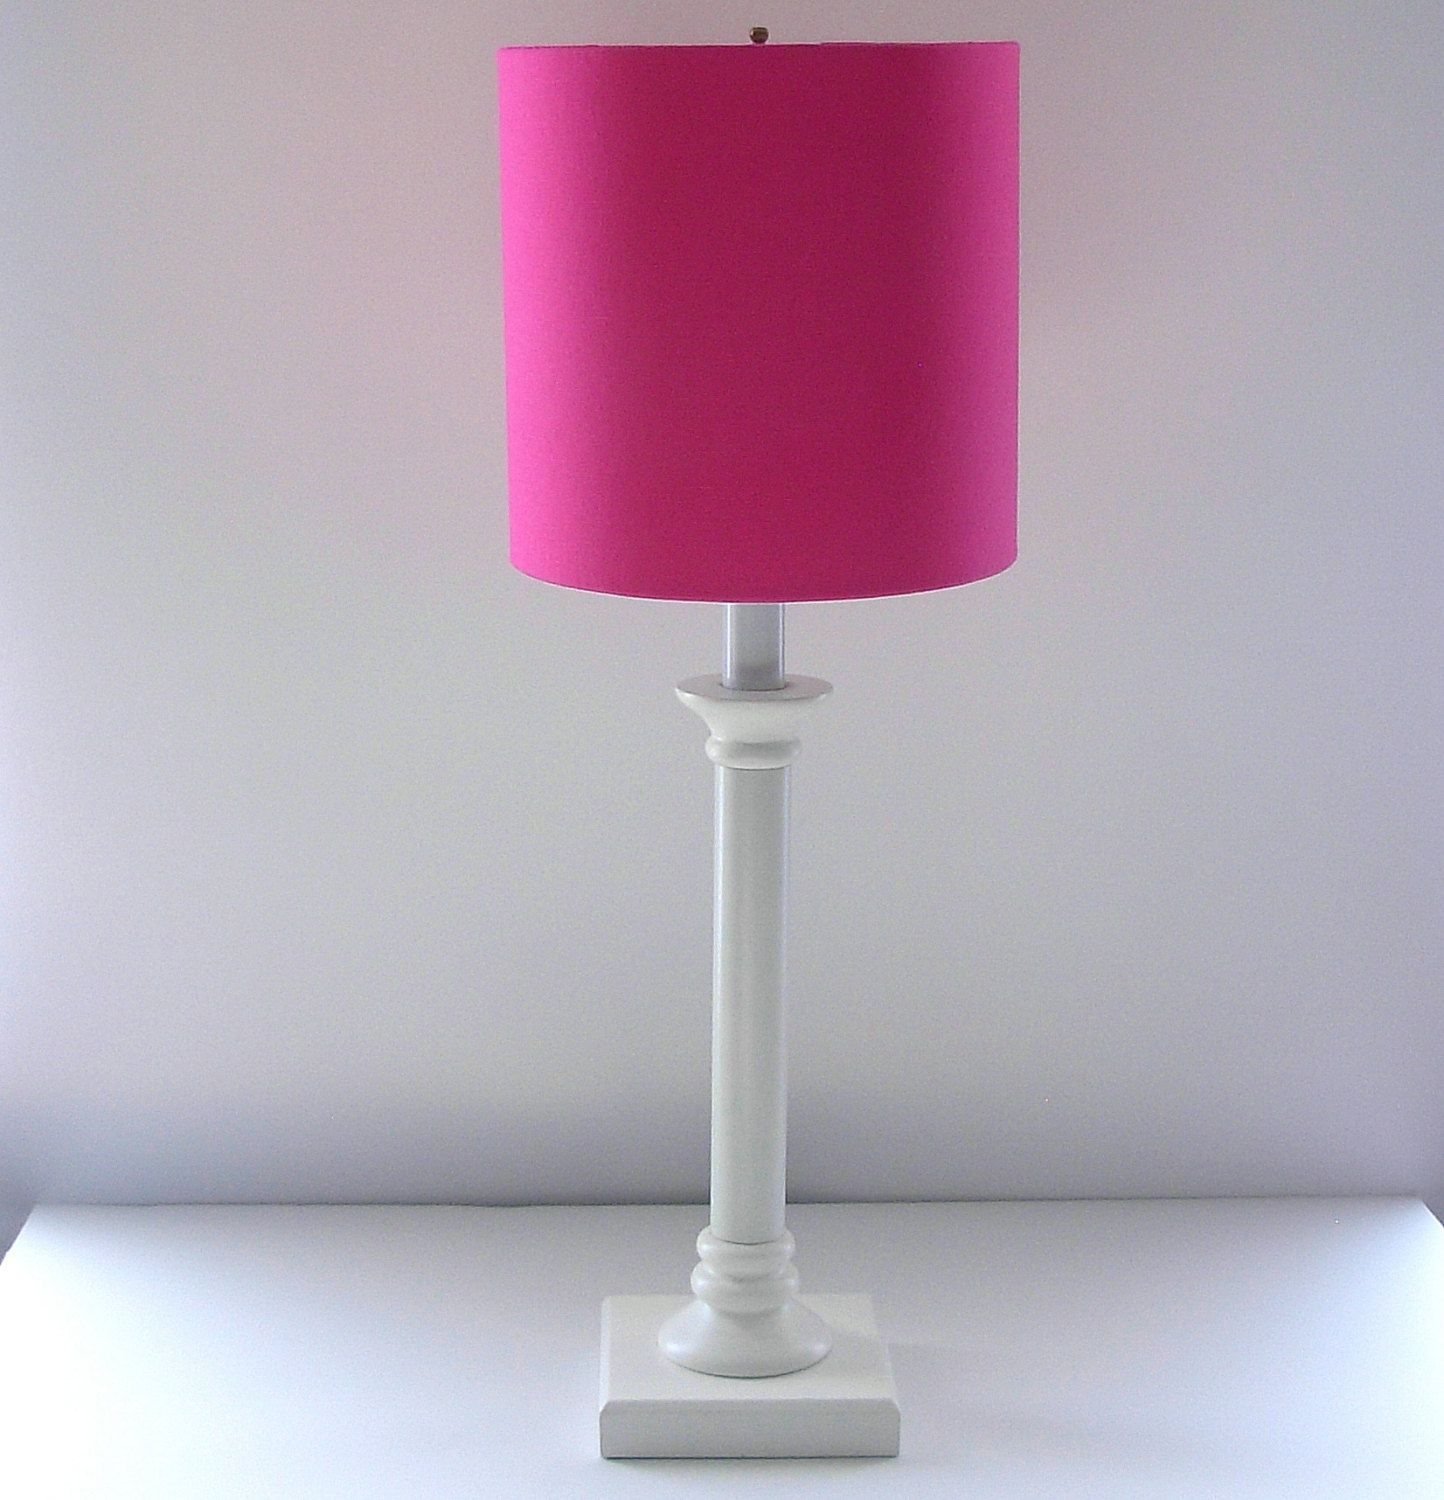 Lamp Shade Pink Drum Lampshade Small Other Colors Available Yellow Red Blue Green Orange Brown Light 28 00 Via Etsy